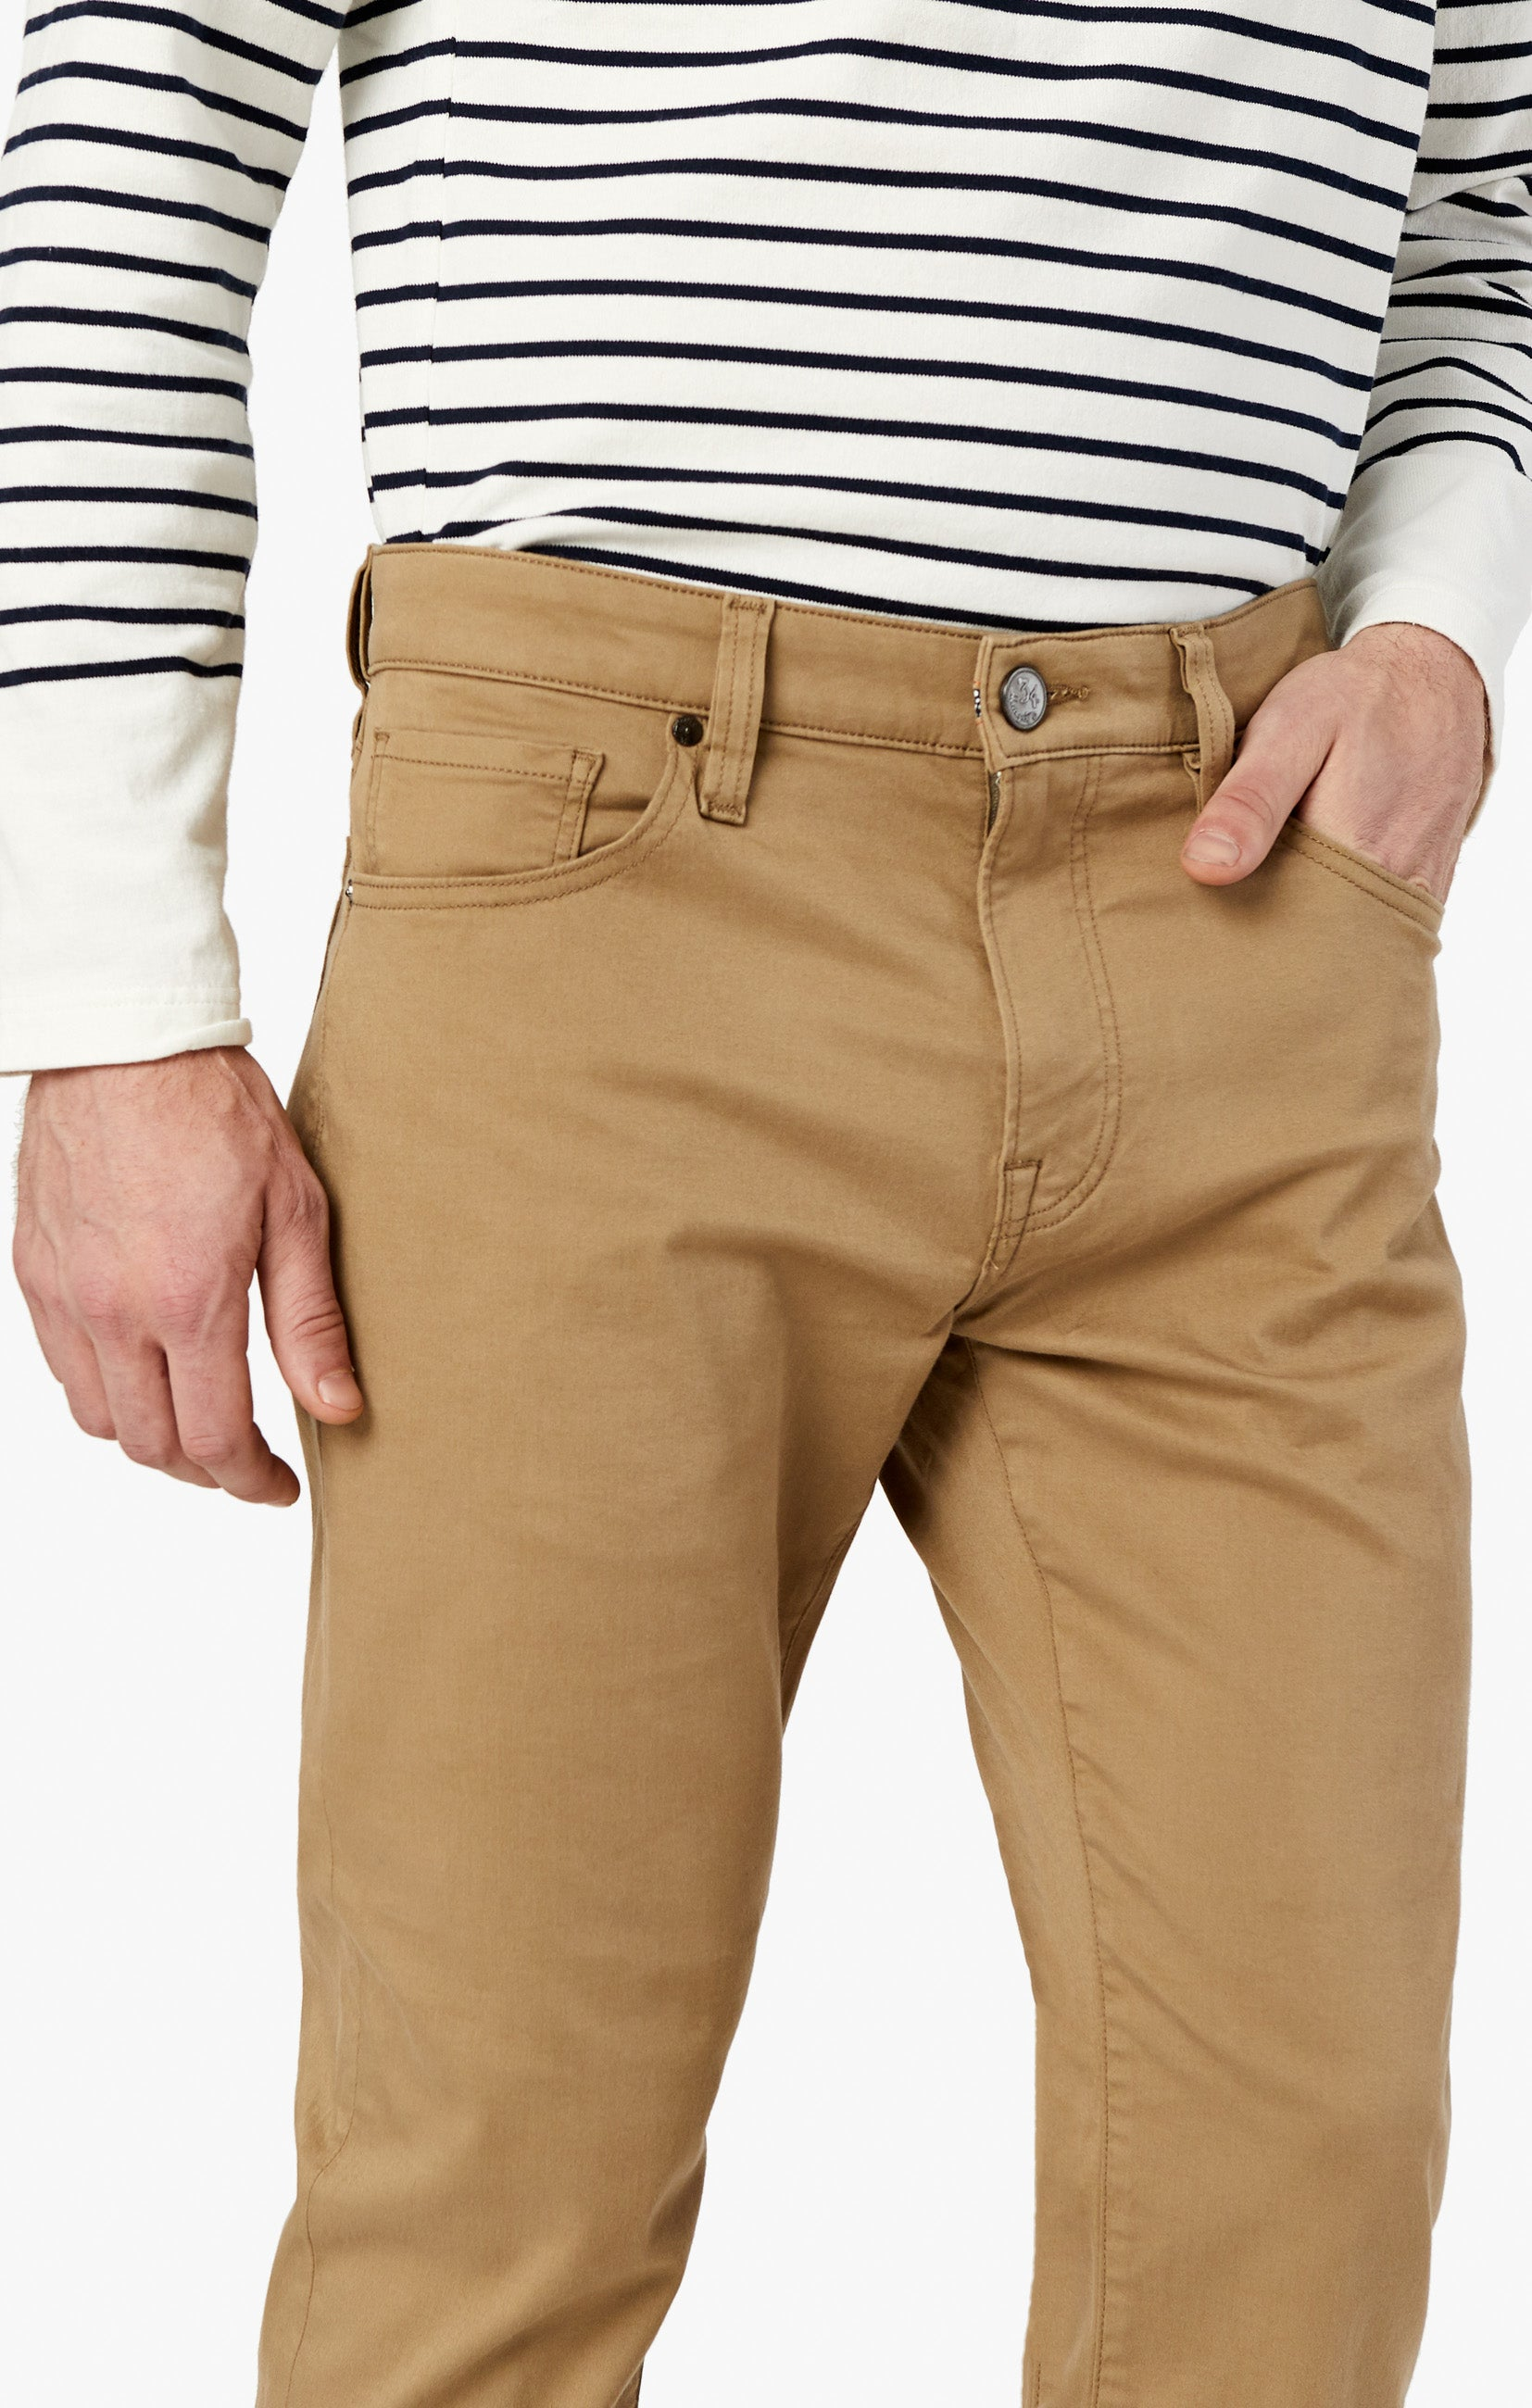 Courage Straight Leg Pants In Khaki Twill Image 5